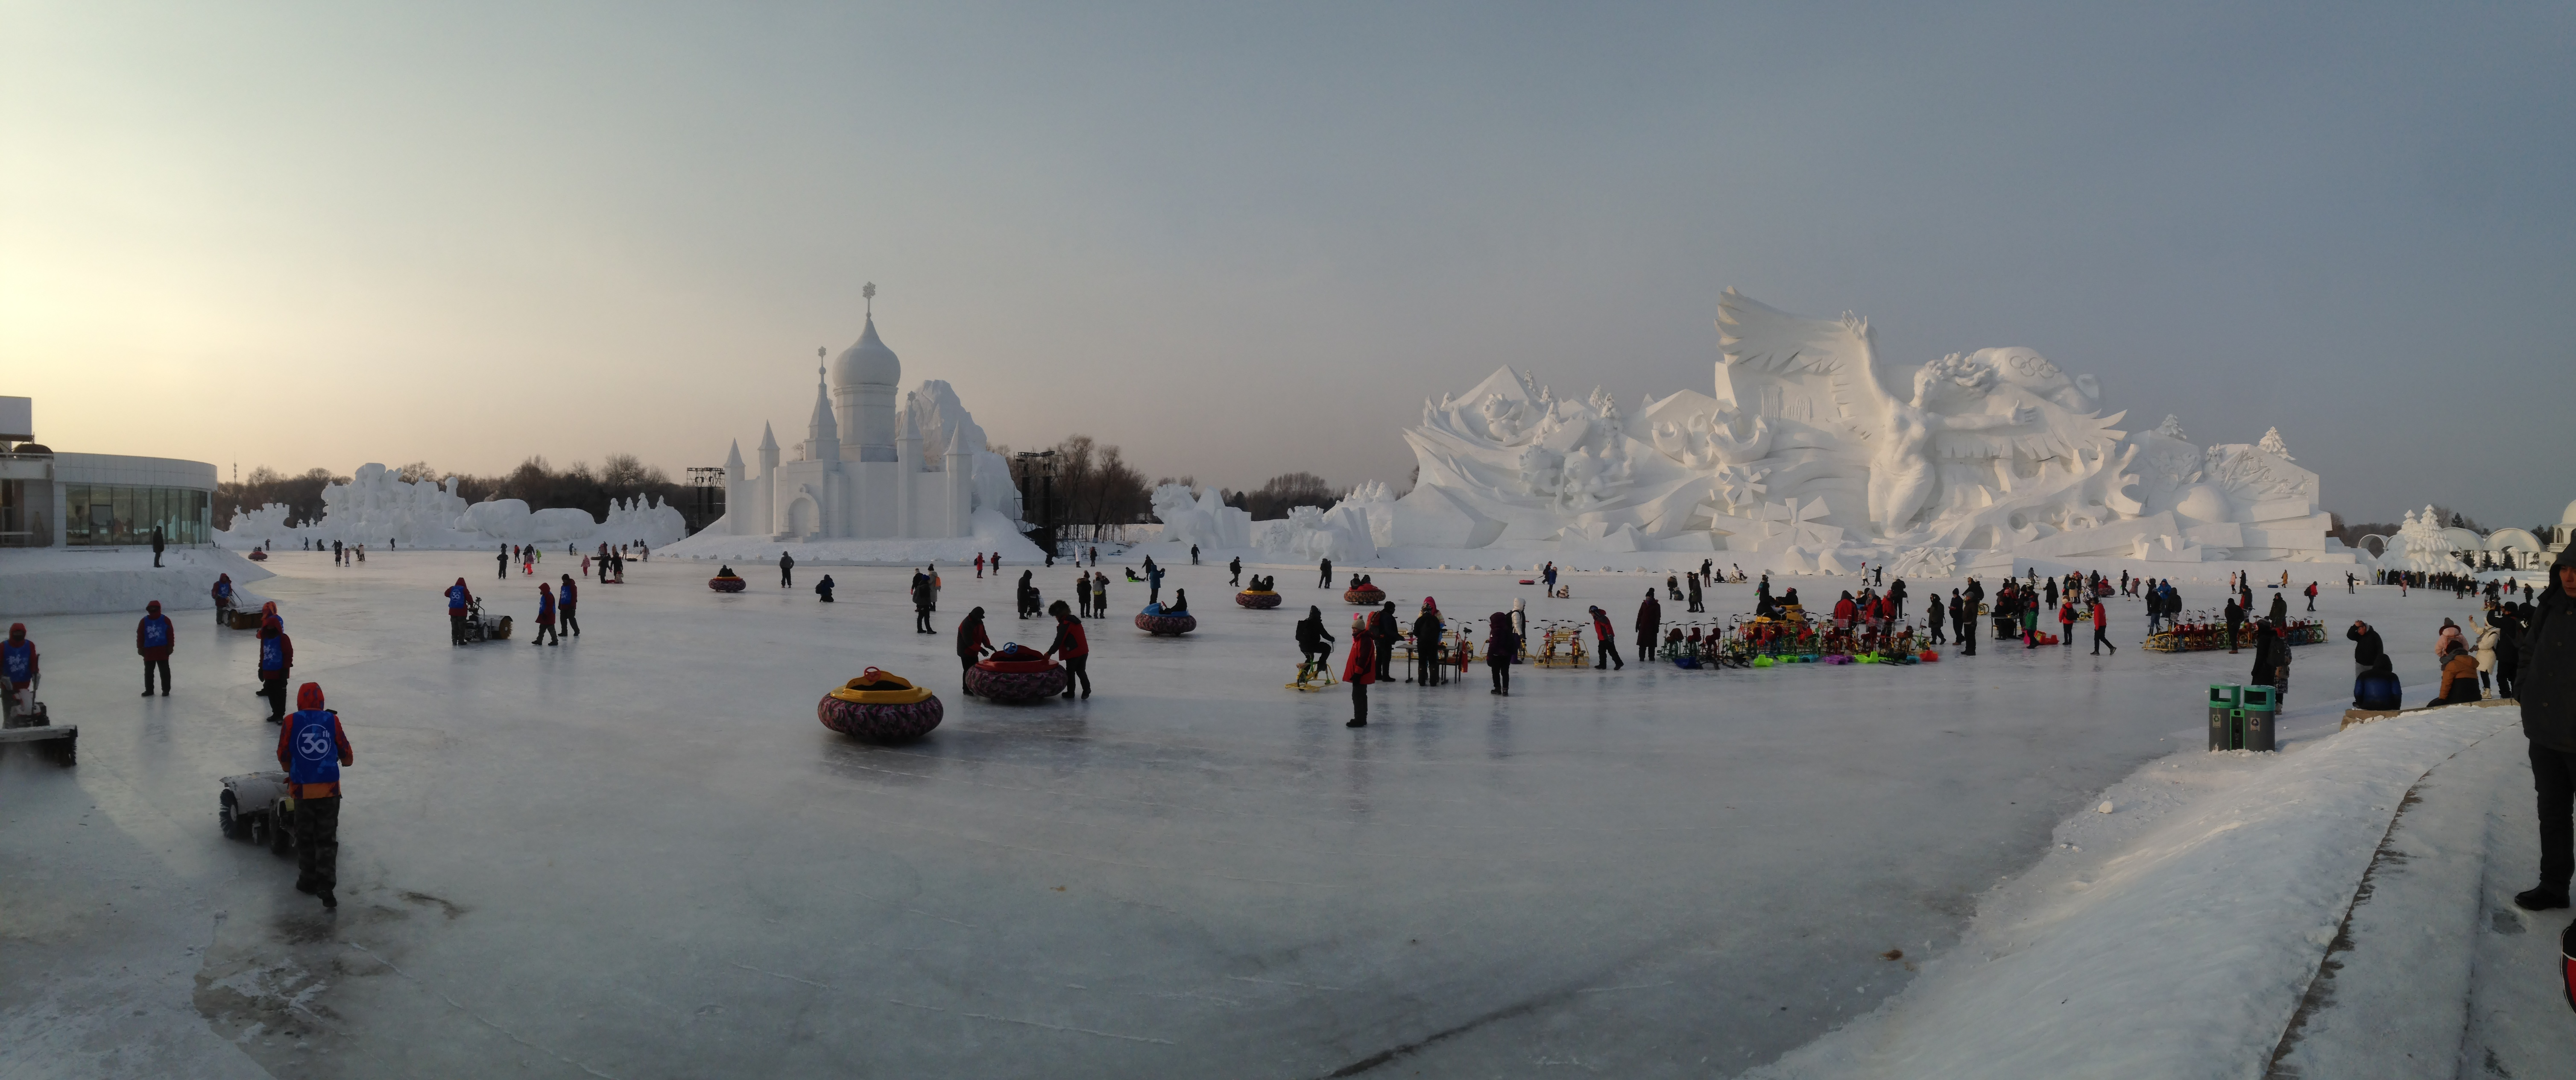 Main Area of Harbin Snow Sculpture